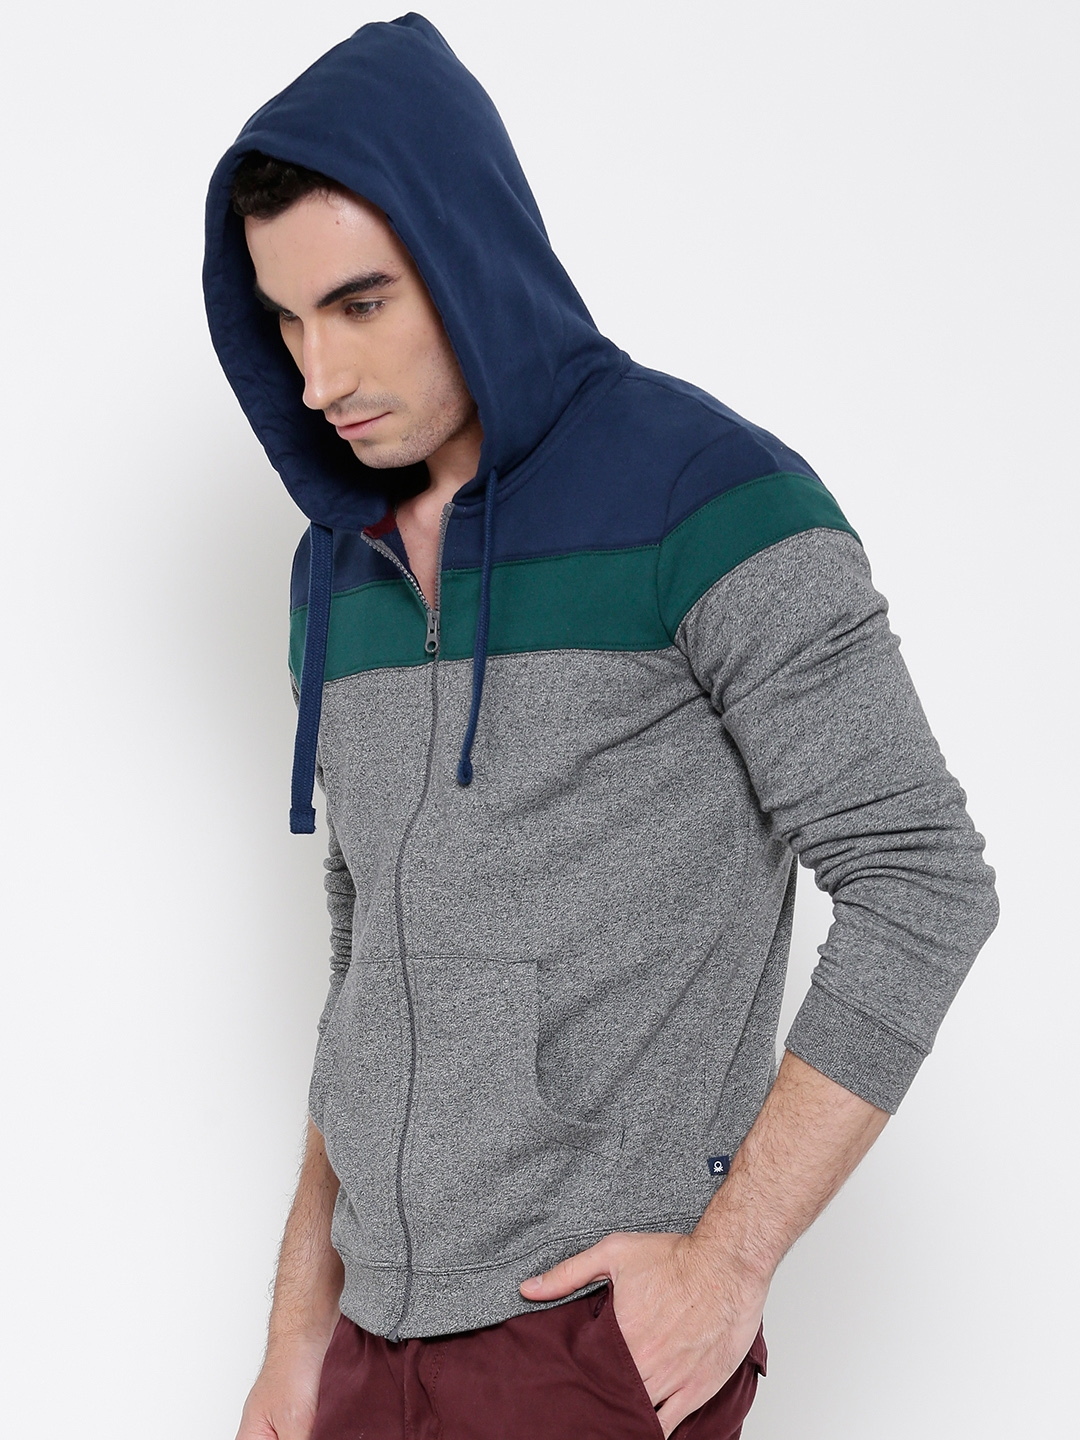 a601a364c1 Buy United Colors Of Benetton Grey Colourblocked Hooded Sweatshirt ...